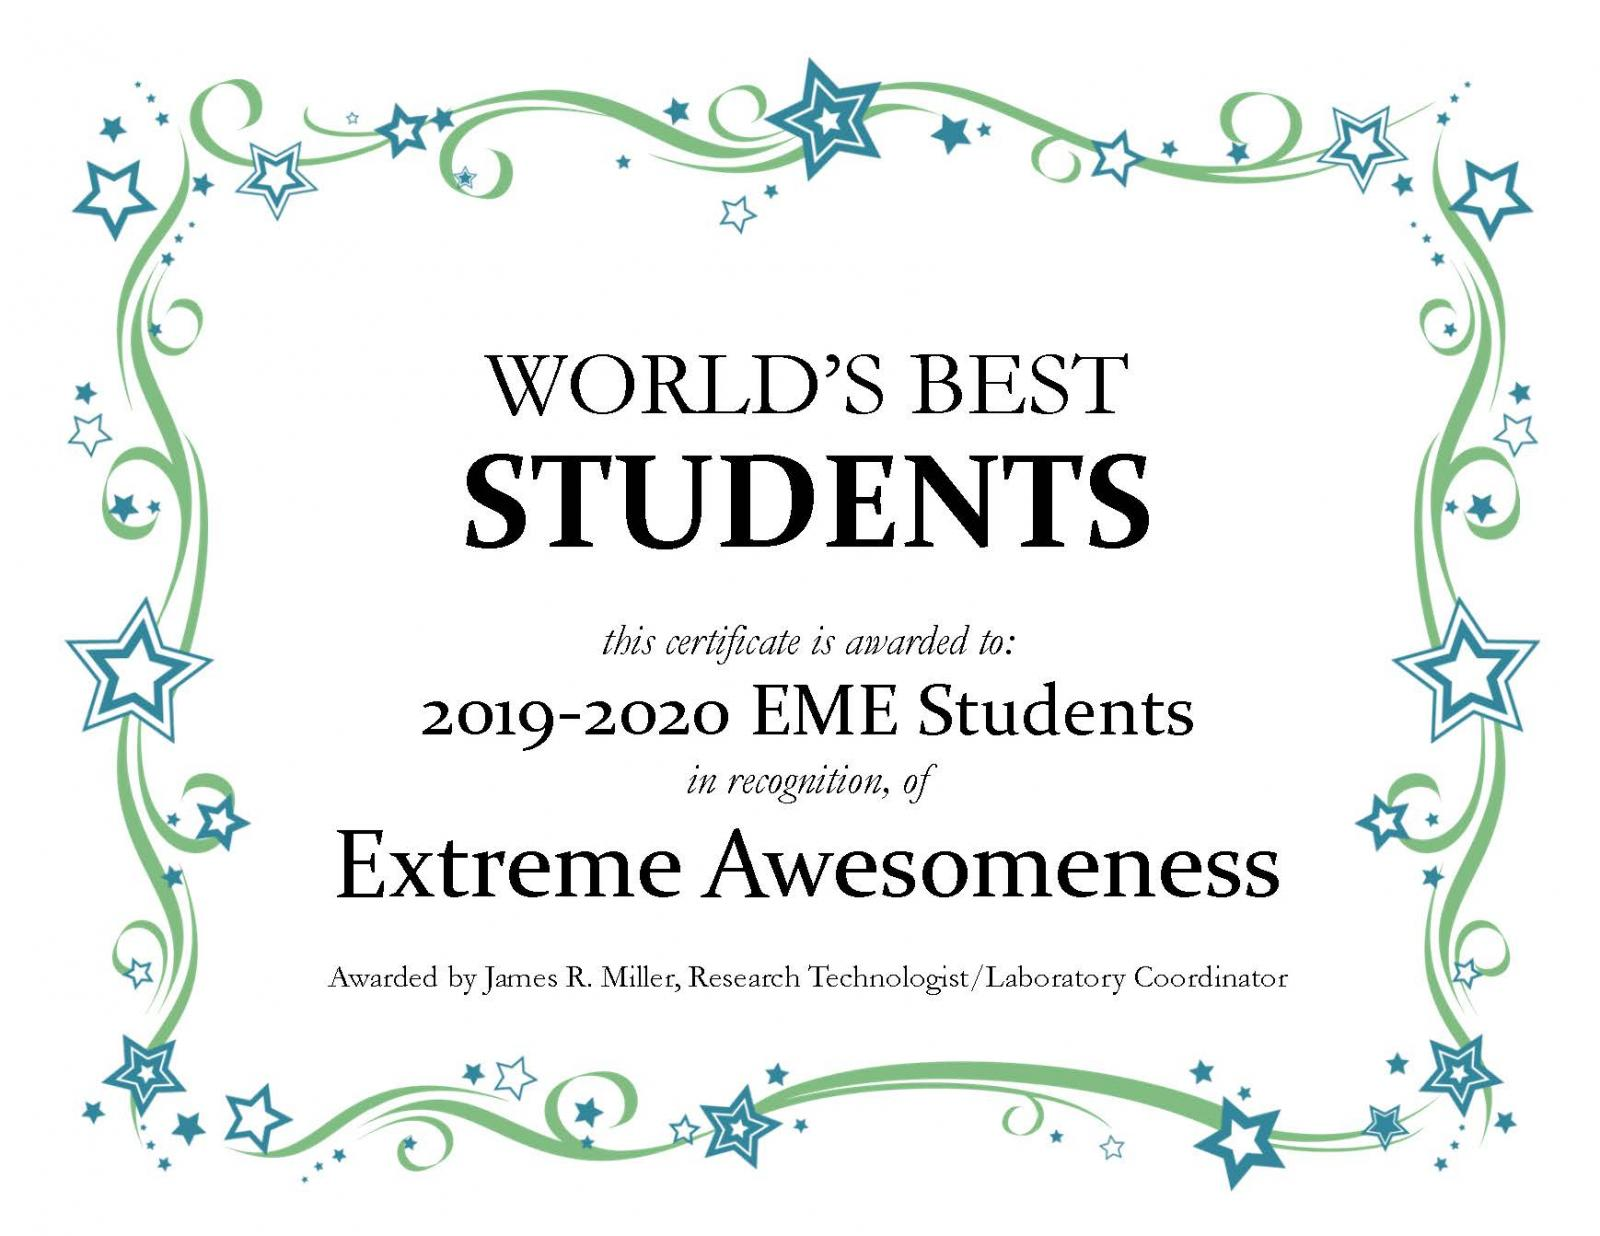 Certificate of Awesomeness for EME Students